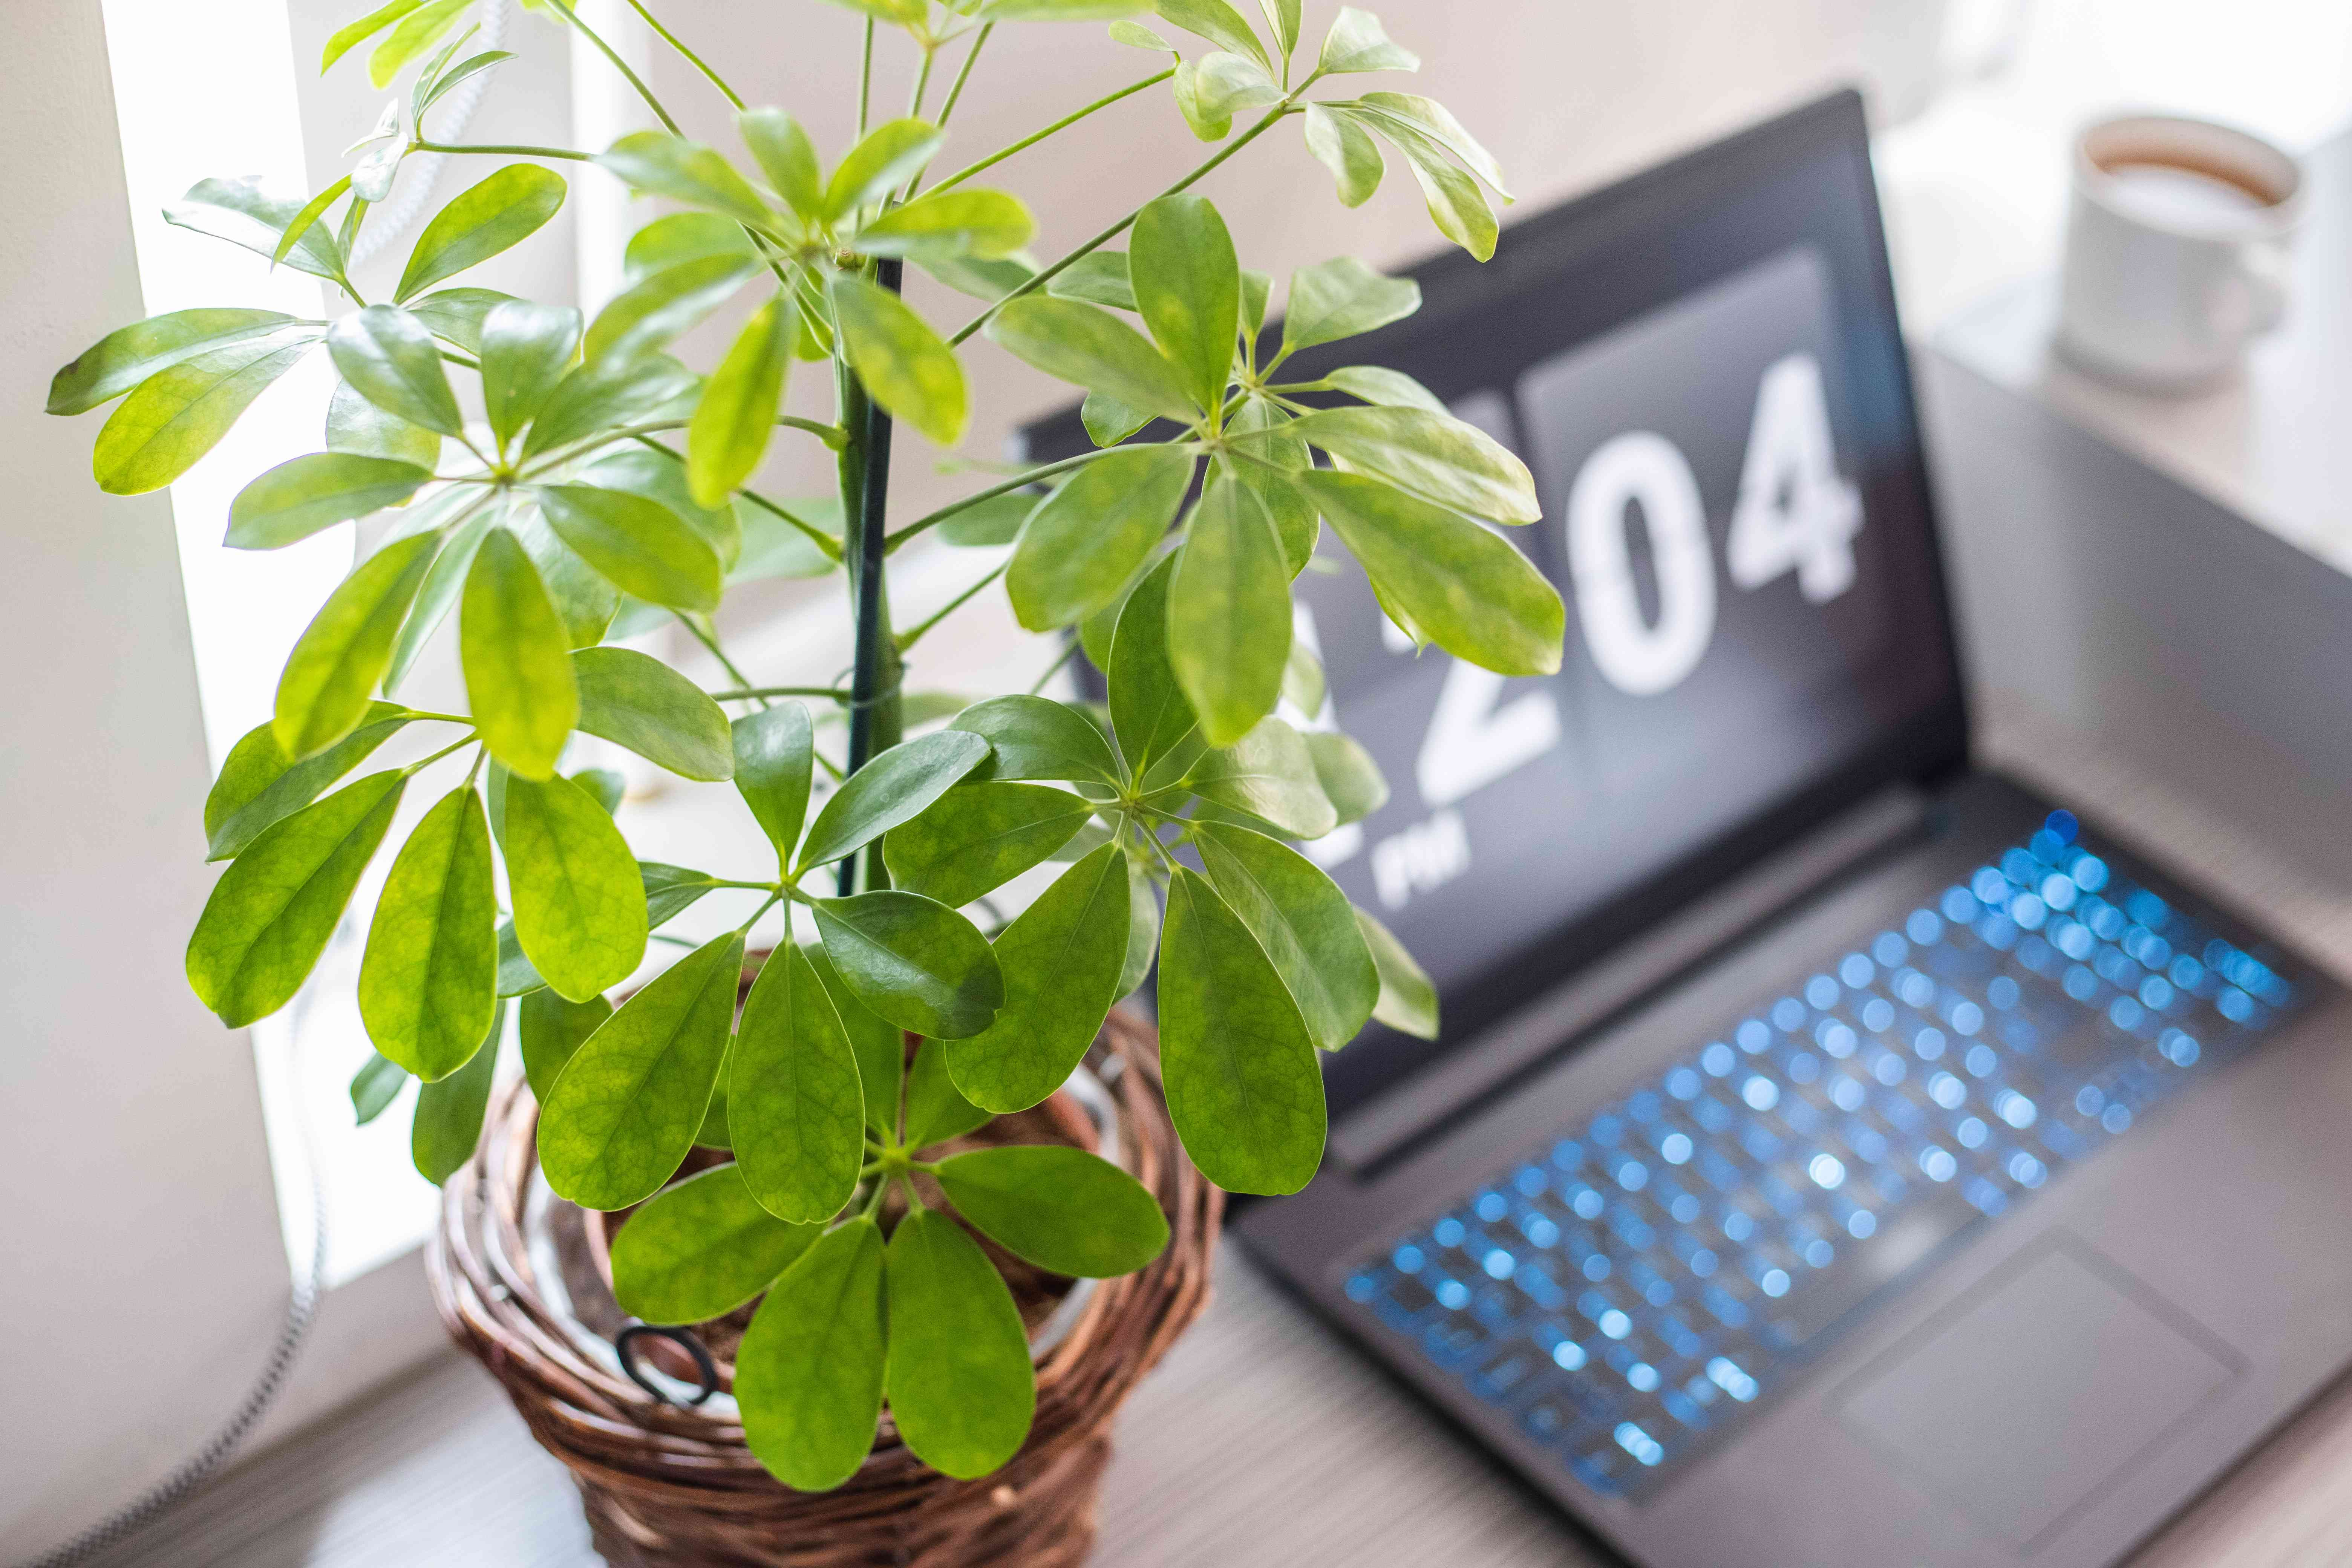 angled shot of green umbrella plant in wicker pot with laptop behind it